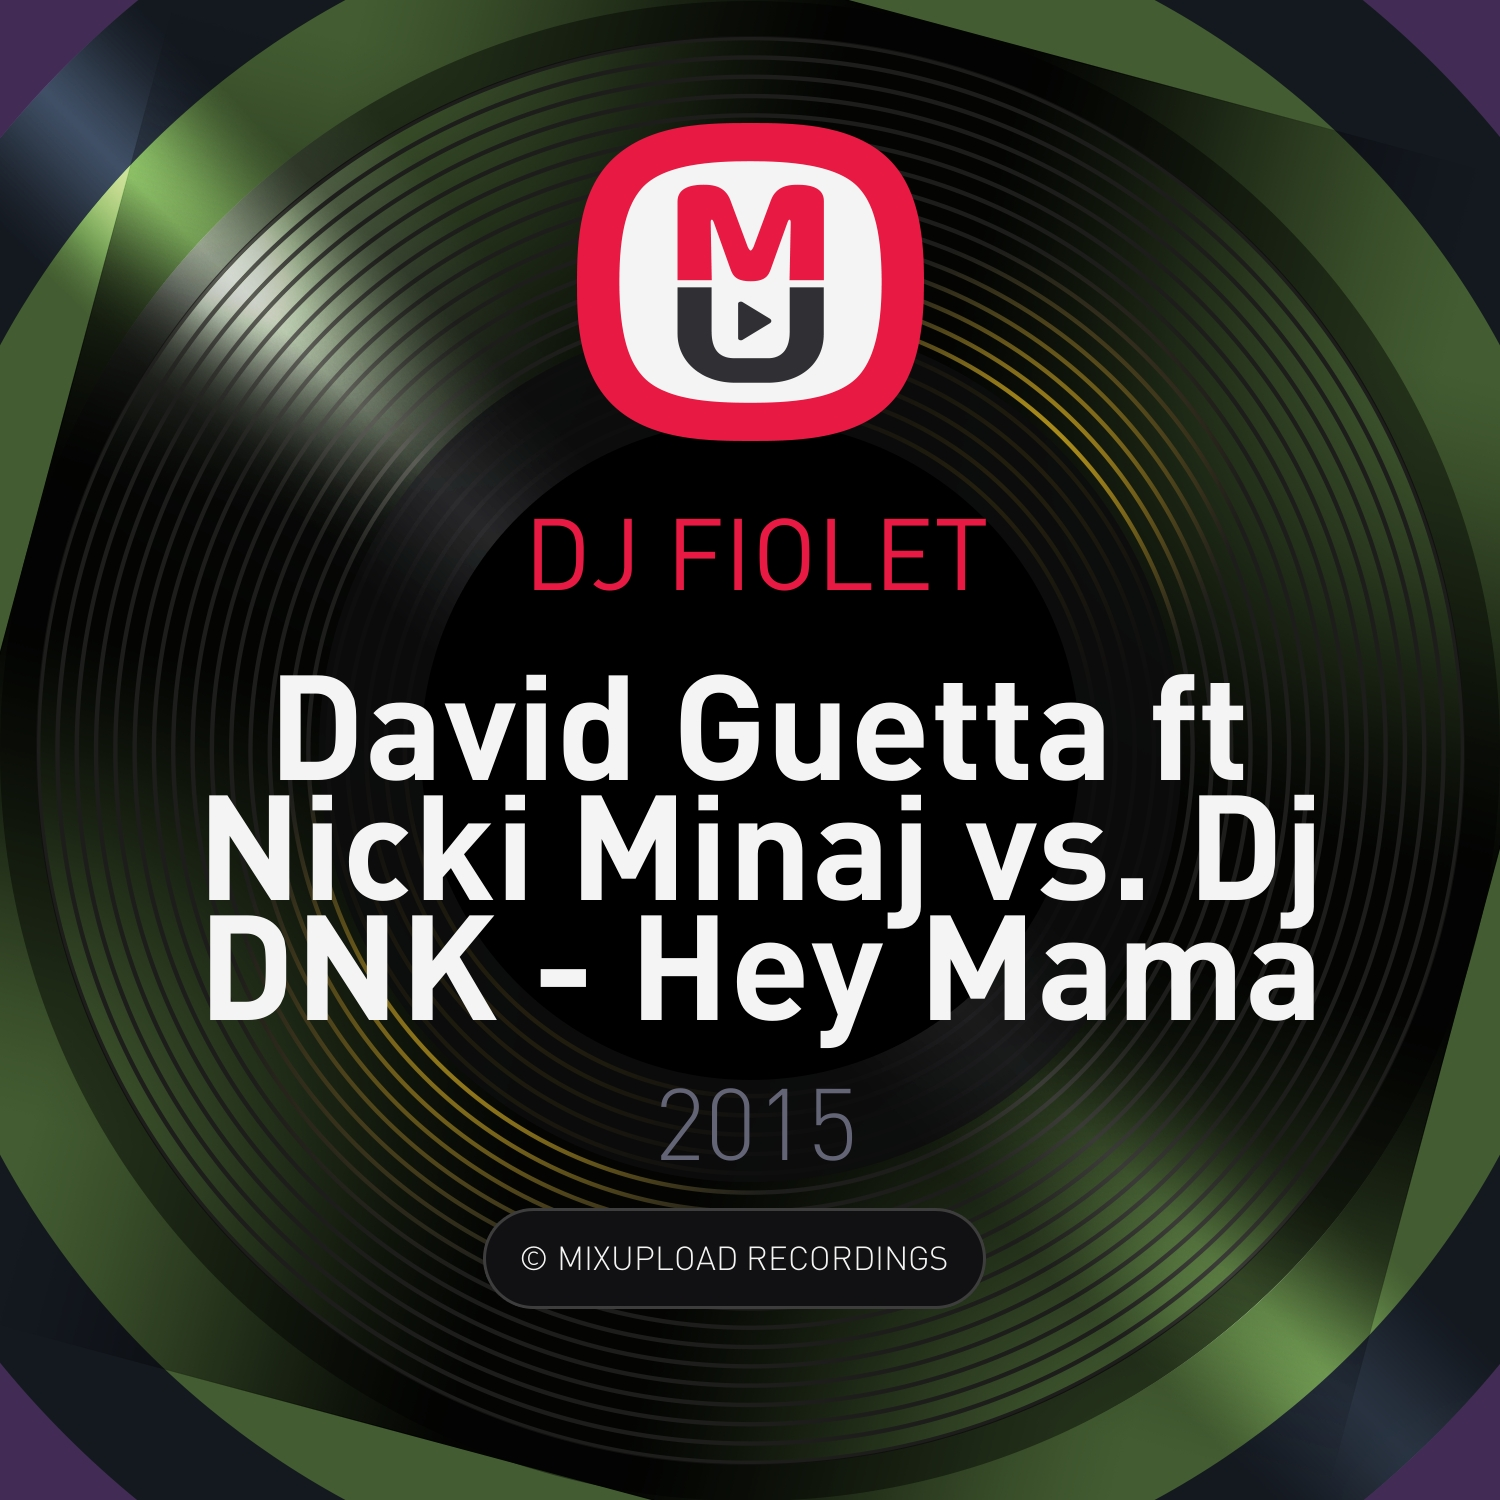 David Guetta ft Nicki Minaj vs. Dj DNK - Hey Mama (DJ FIOLET Mash Up)